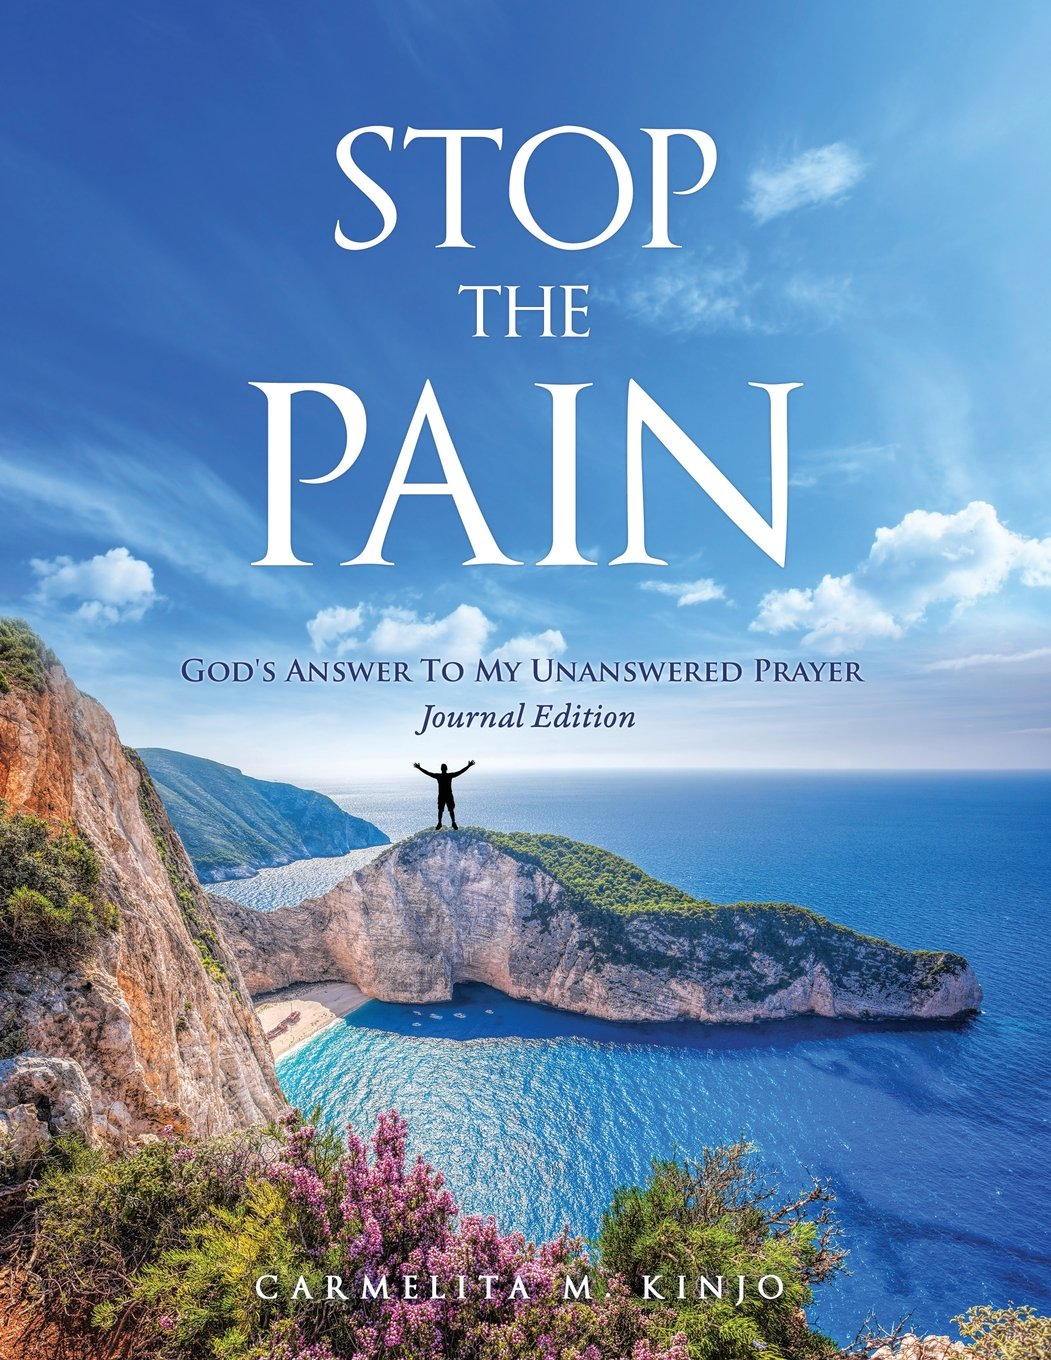 STOP THE PAIN: God's Answer to My Unanswered Prayer Journal Edition  - Use the Journal Edition of STOP THE PAIN: God's Answer to My Unanswered Prayer as your personal joyful memoir to boost your inspiration in moving forward towards wholesome living against the adversary of pain!